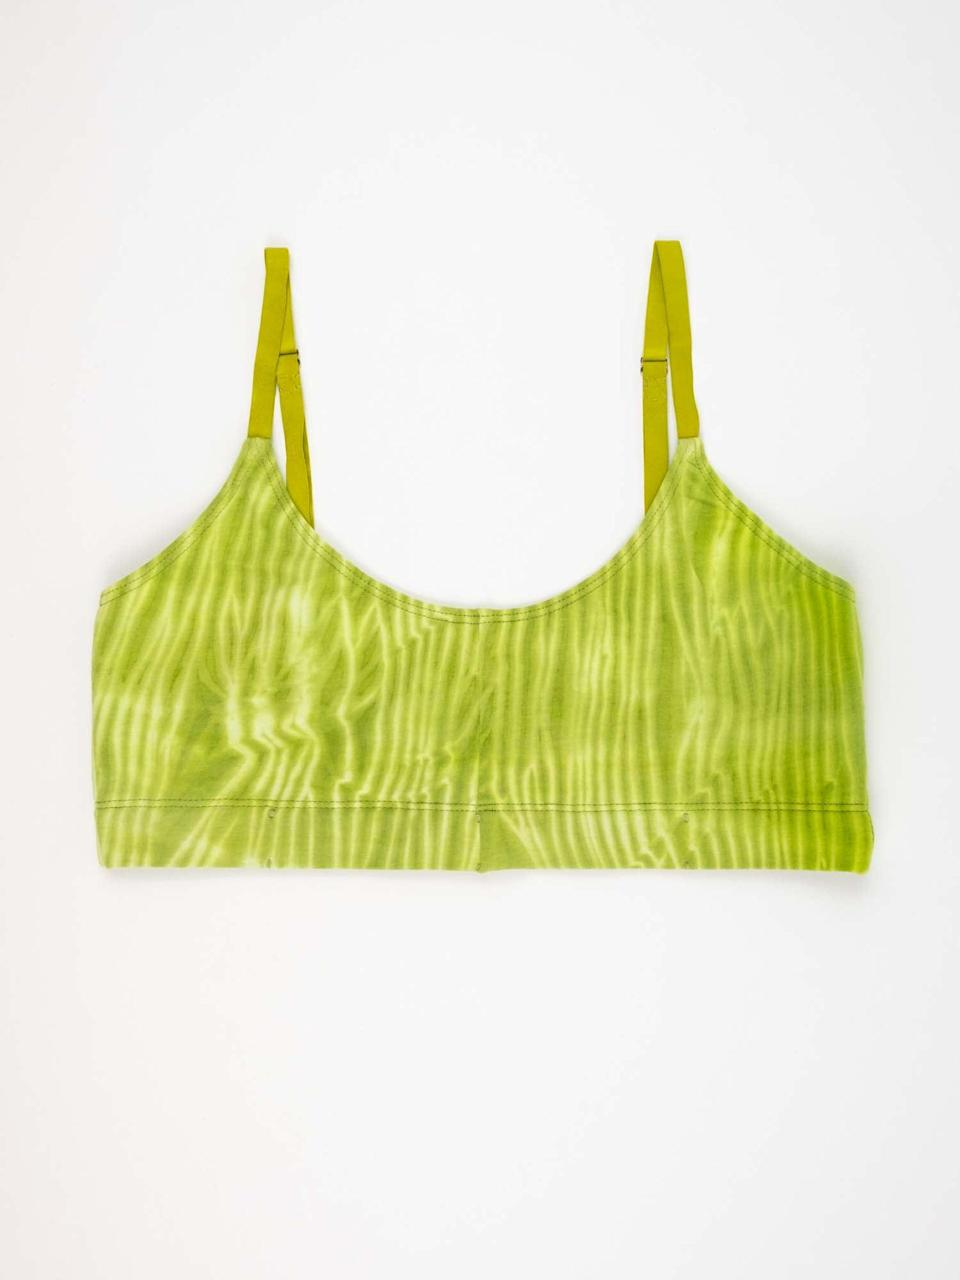 """Even though my bralettes have barely seen the light of day since pre-pandemic, I've been eyeing this beautiful, hand-dyed piece. I love that it's handmade and it looks super comfy too.<br><br><strong>Or Else</strong> Bralette Green, $, available at <a href=""""https://www.orelselabel.com/product/bralette-green/"""" rel=""""nofollow noopener"""" target=""""_blank"""" data-ylk=""""slk:Or Else"""" class=""""link rapid-noclick-resp"""">Or Else</a>"""